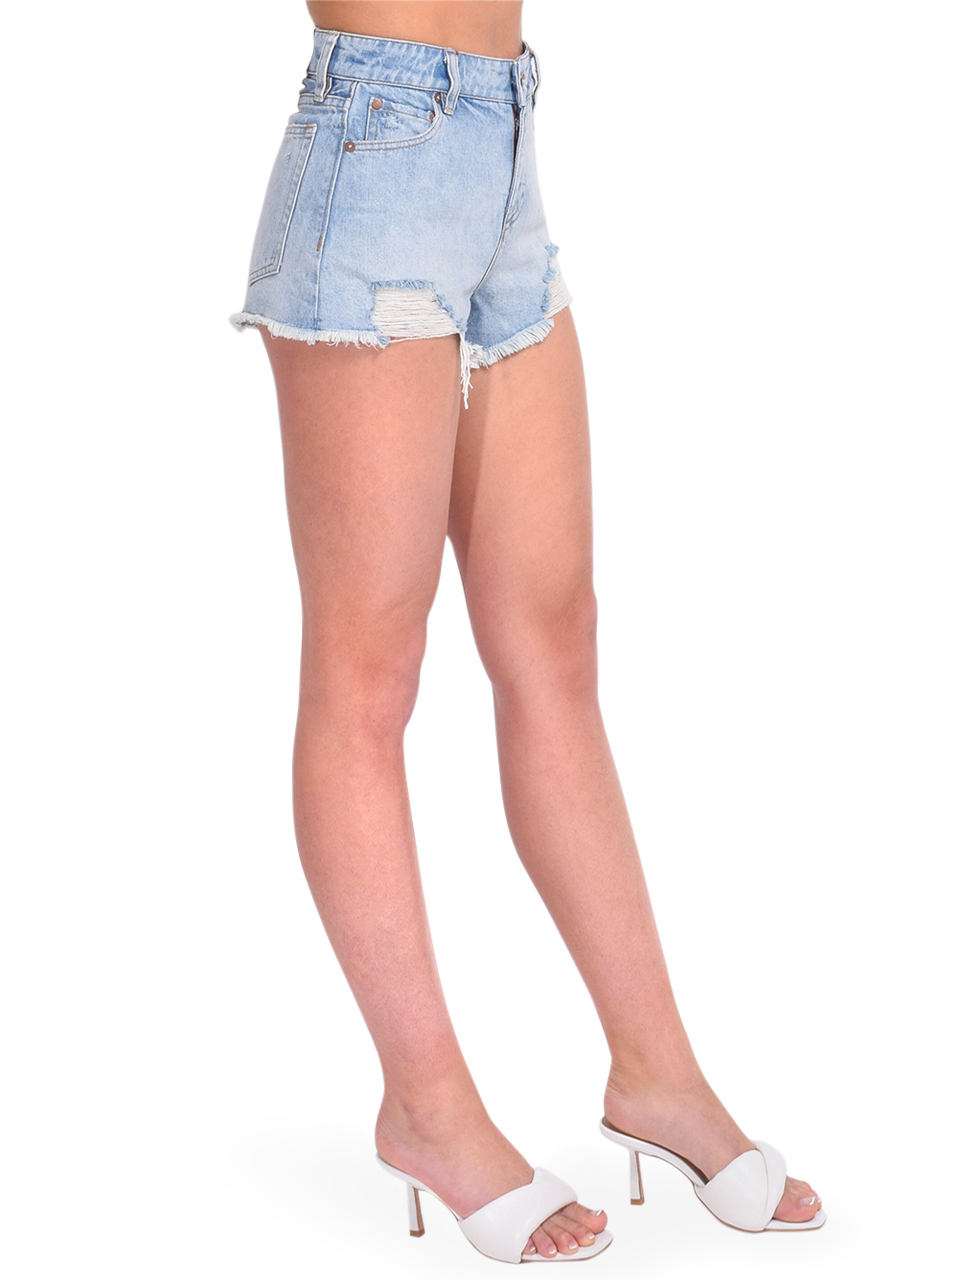 ALICE + OLIVIA Amazing High Rise Vintage Short Side View